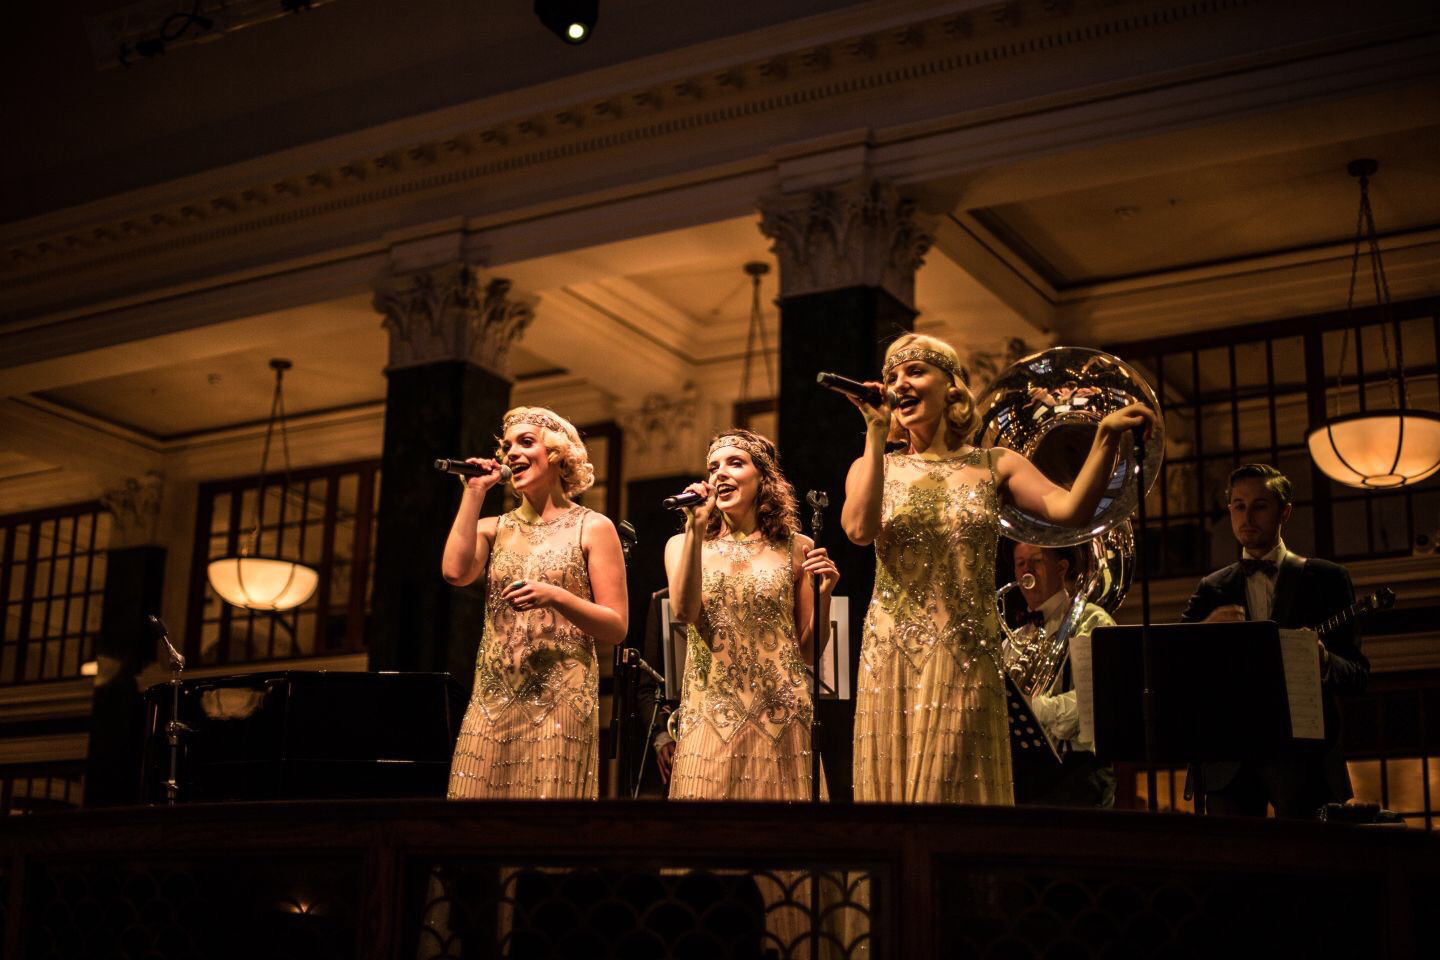 The Wild Tonics - The glamorous vintage trio sing classics and modern hits with a jazz spin.